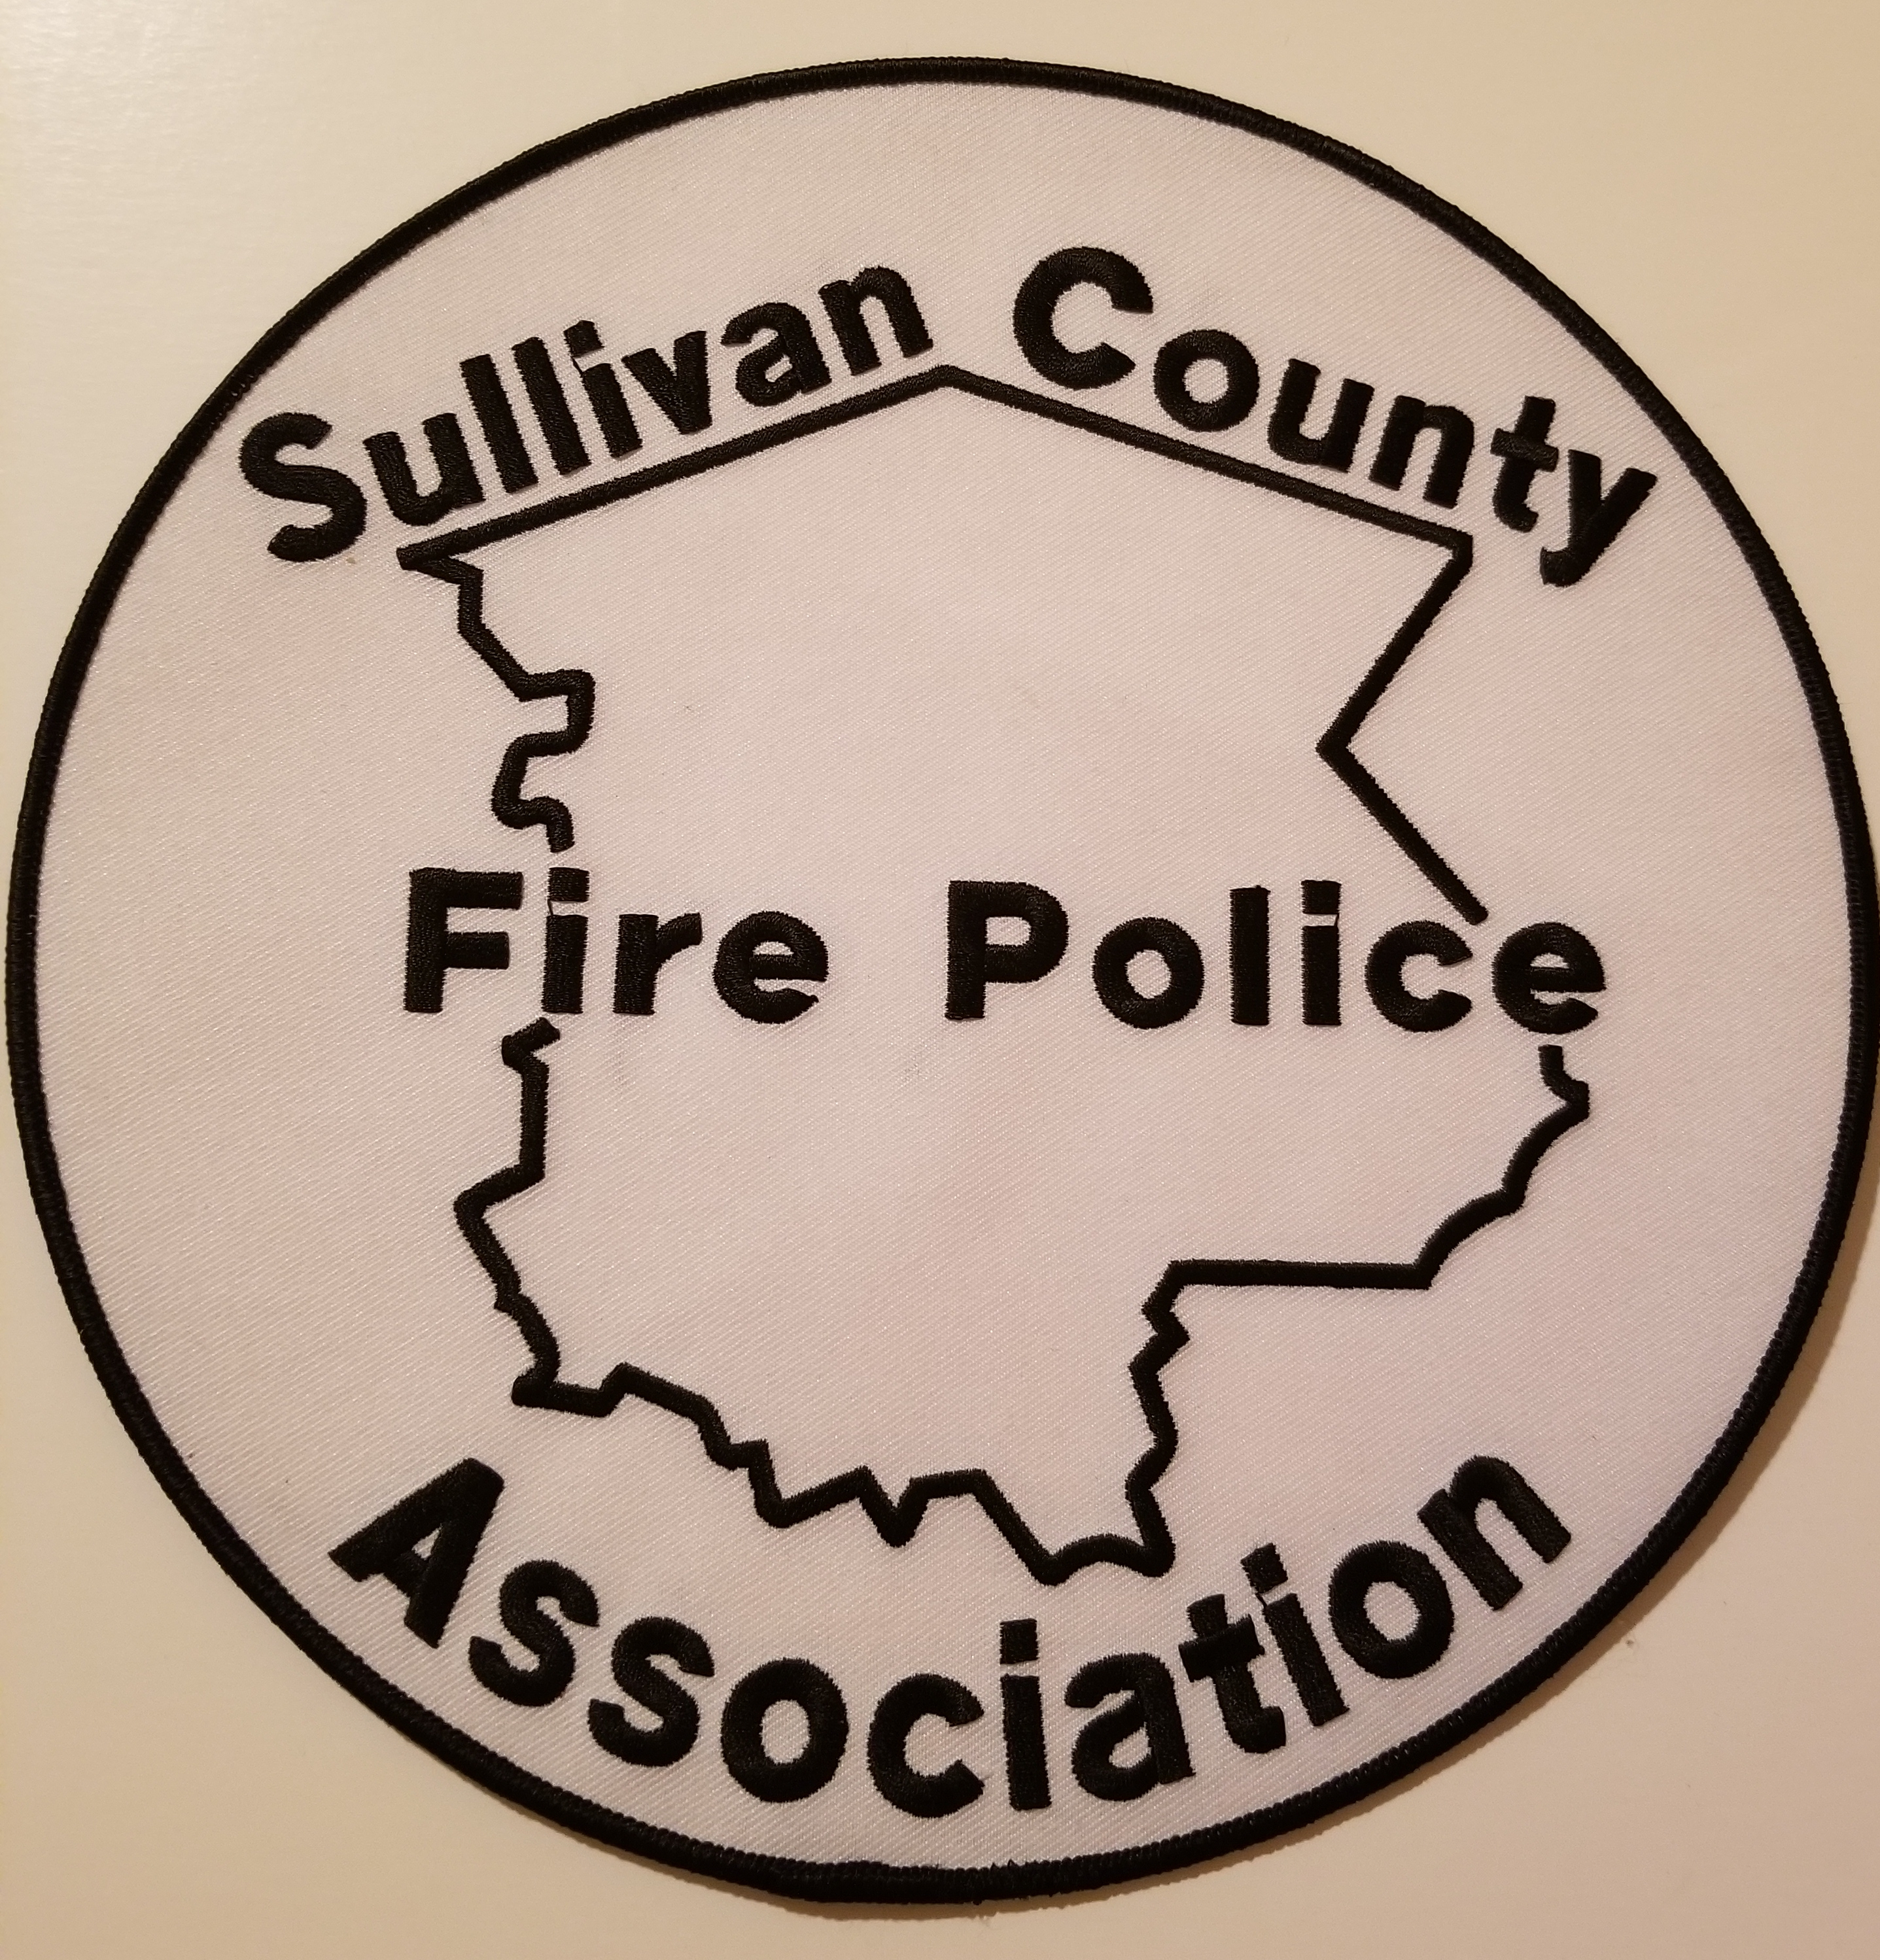 Sullivan County Fire Police Association